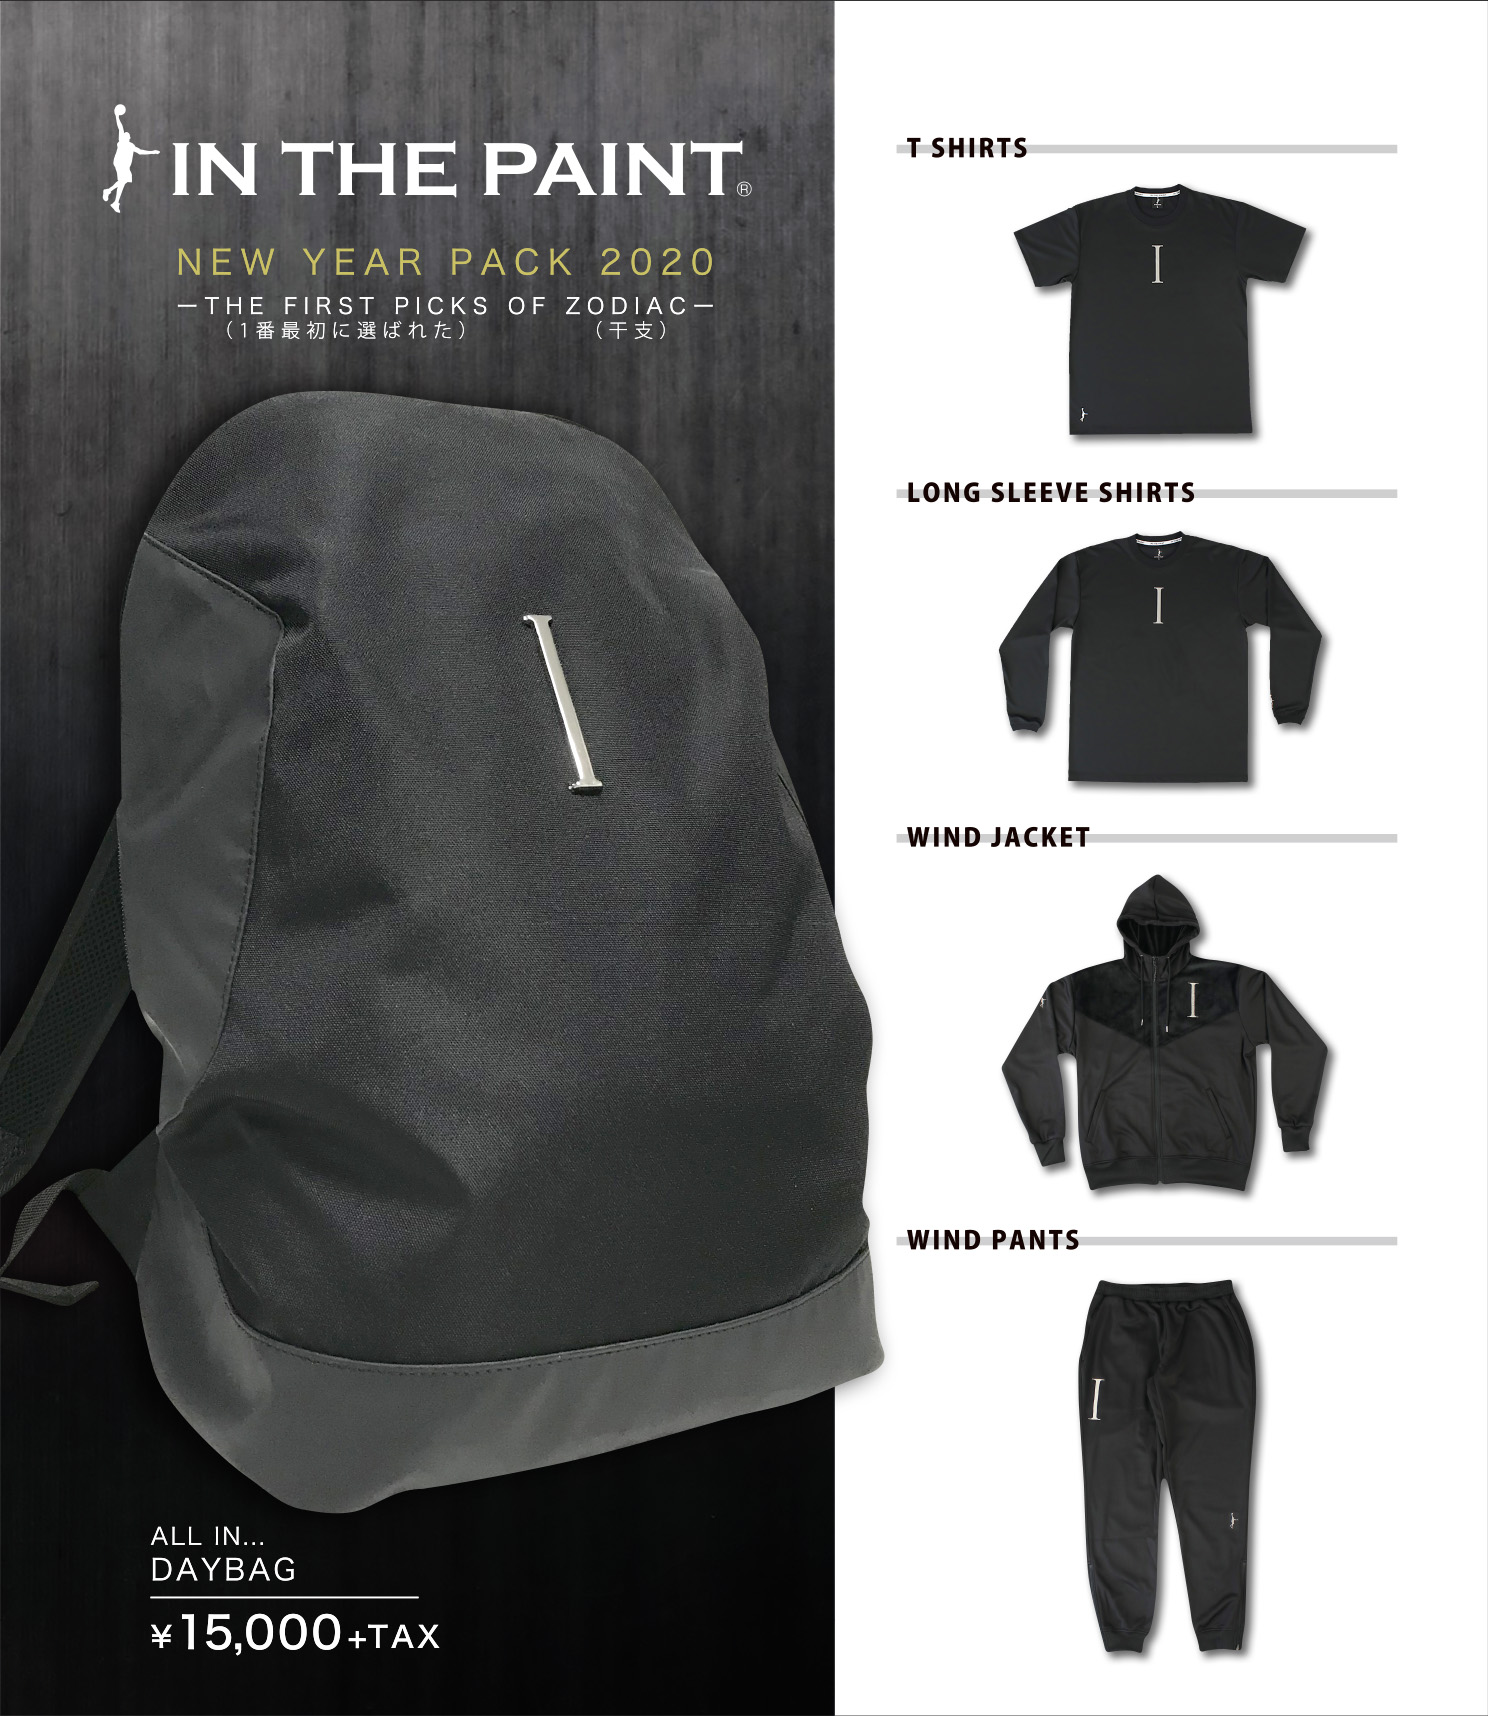 ITP2000NYP / IN THE PAINT / インザペイント / 2020 NEW YEAR PACK / ニューイヤーパック